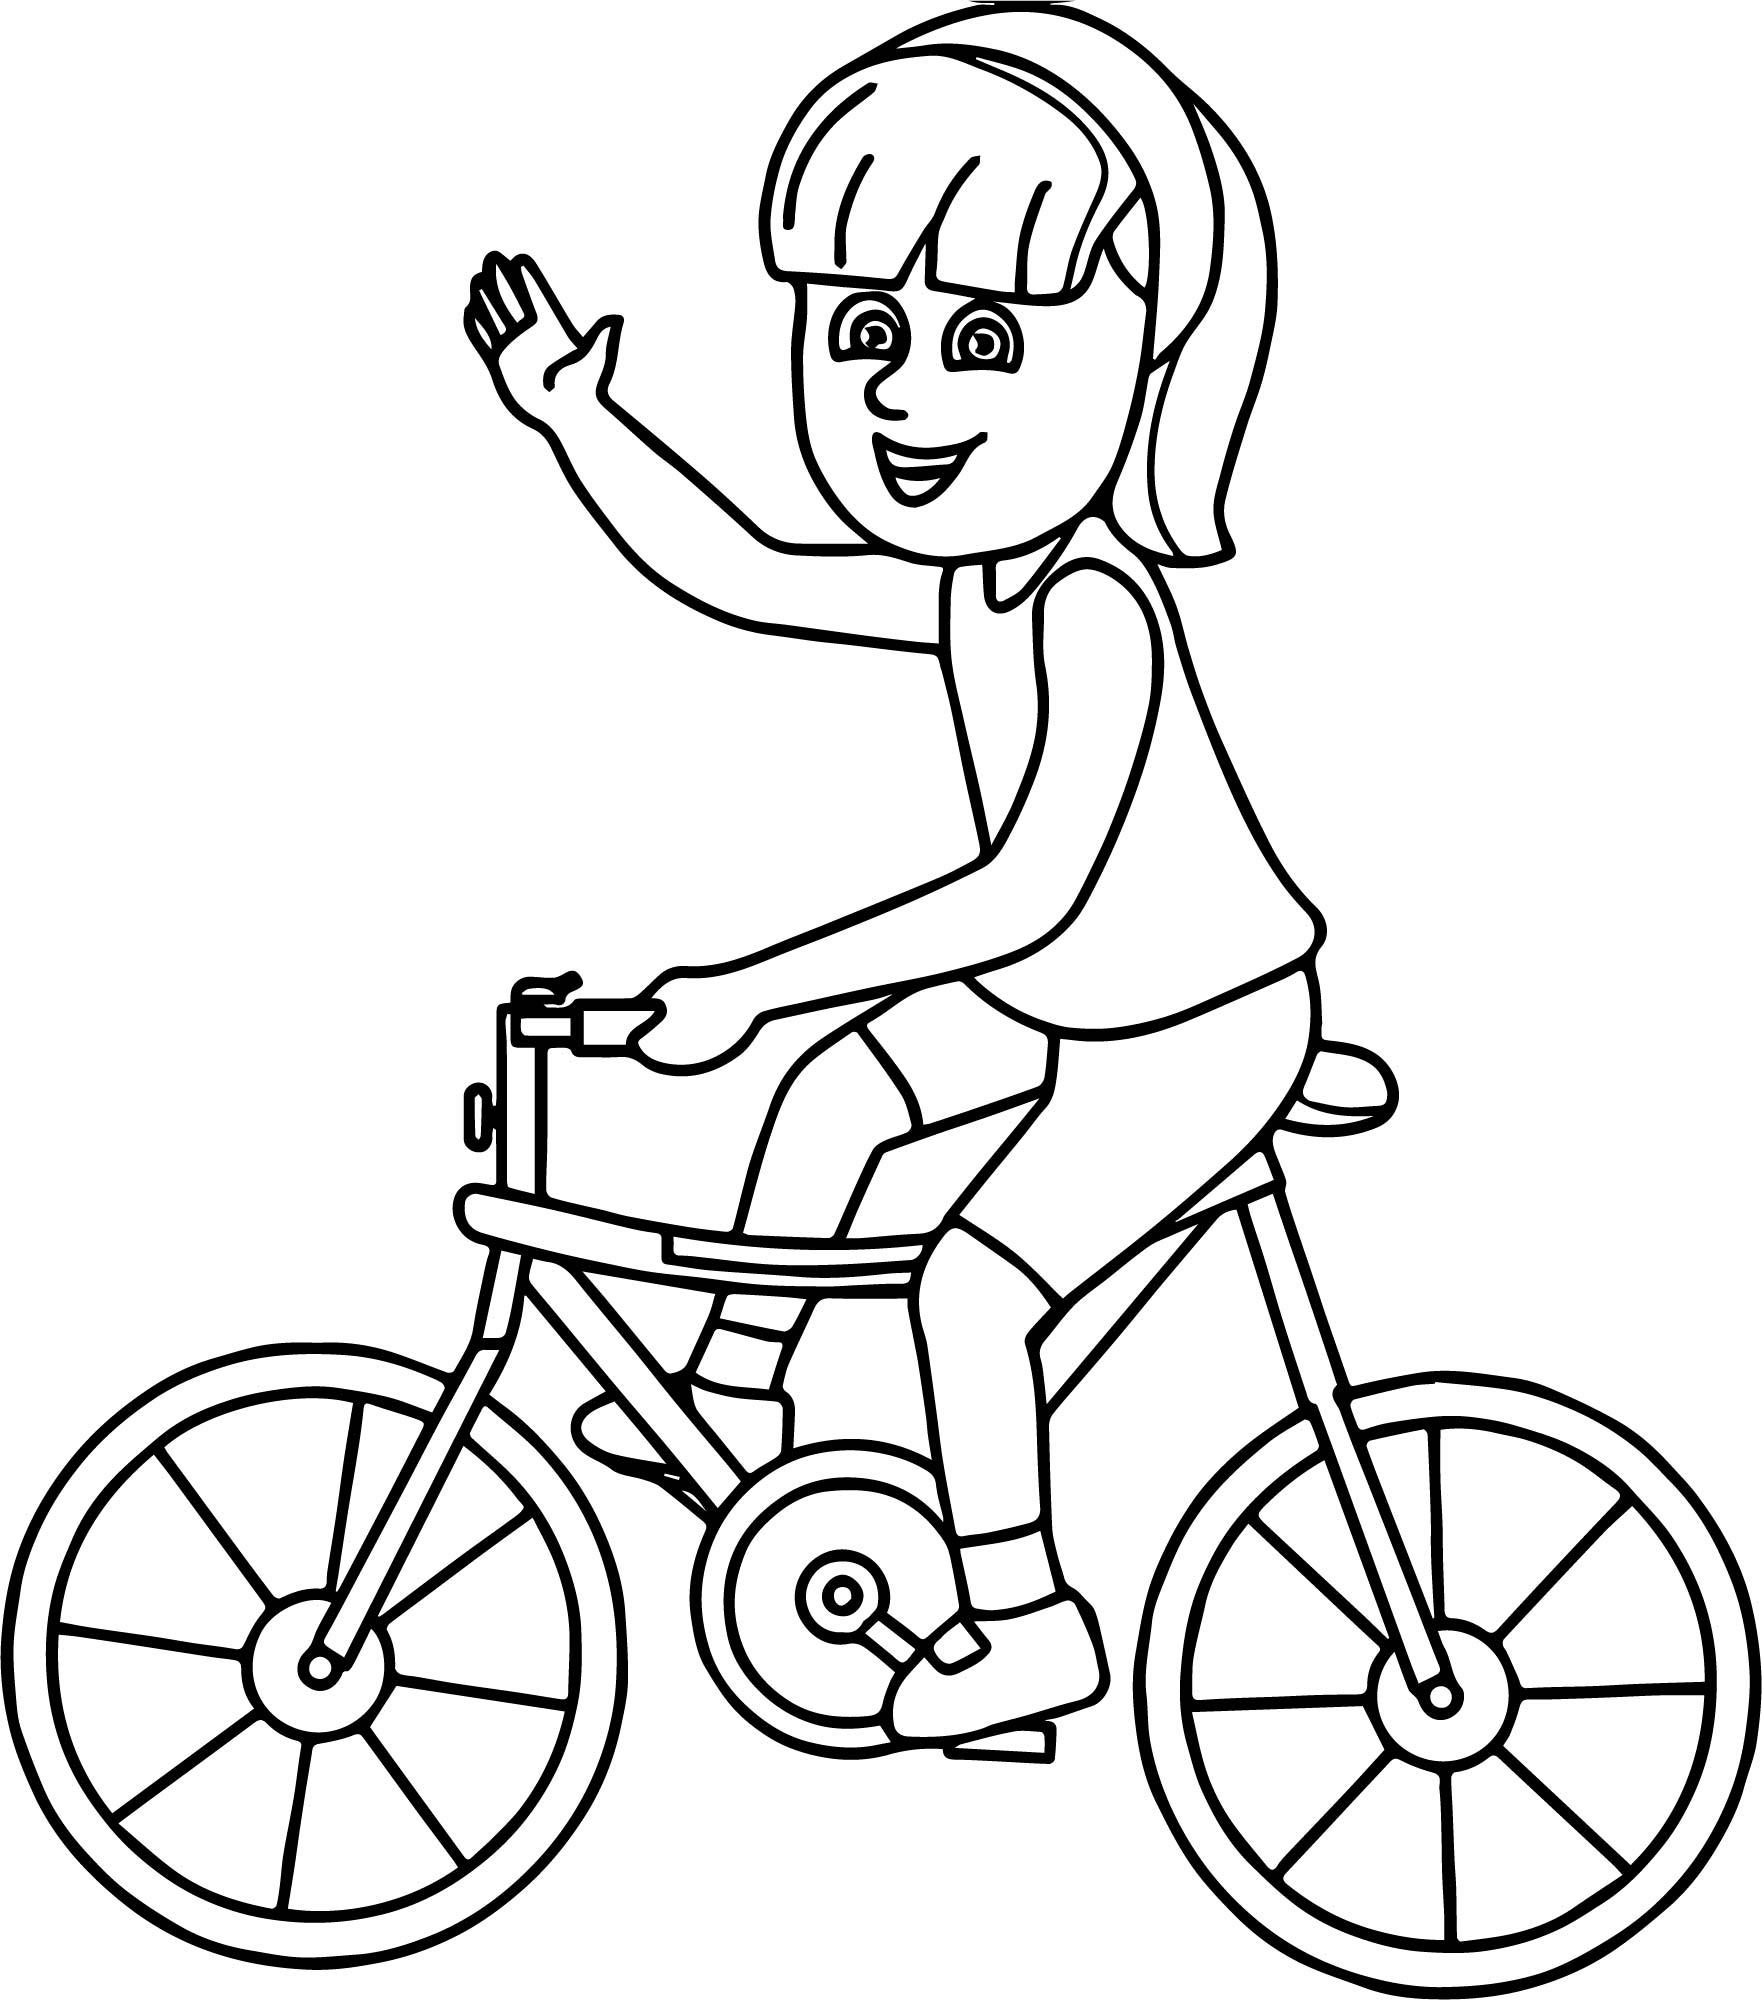 Bike Coloring Pages Unique Riding Girl On Bicycle Coloring Page  Wecoloringpage Inspiration